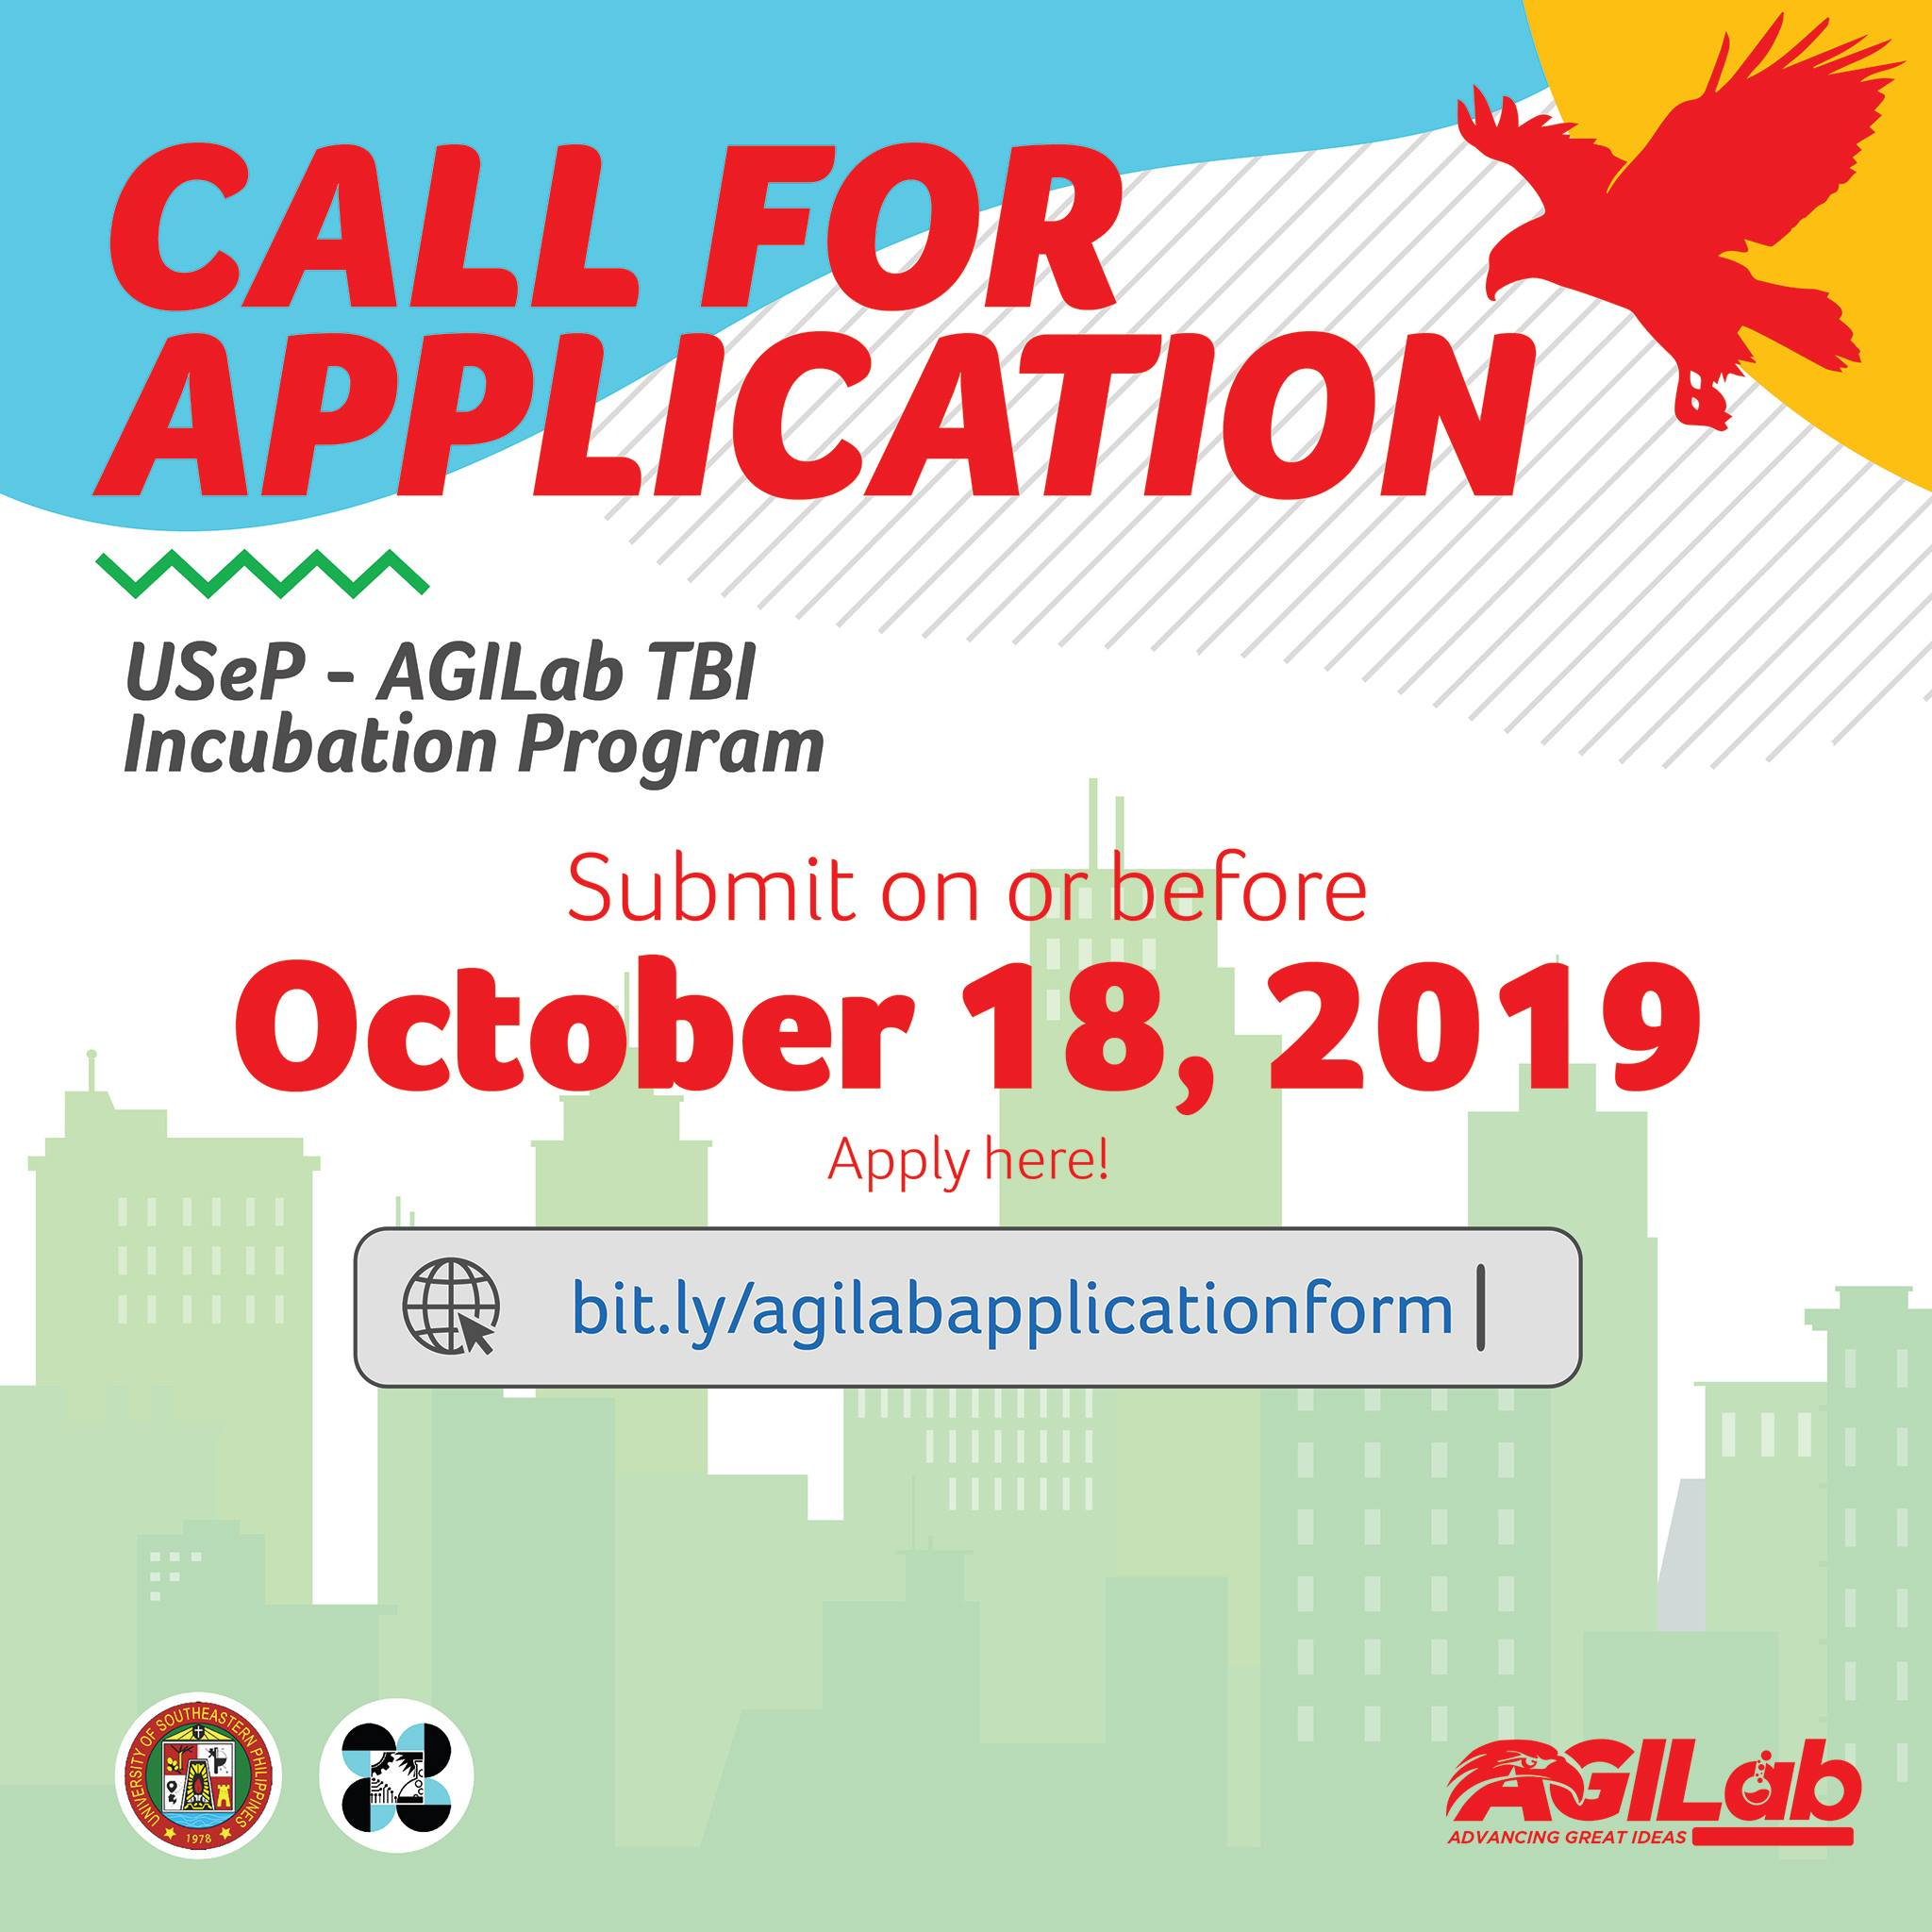 Call for Application